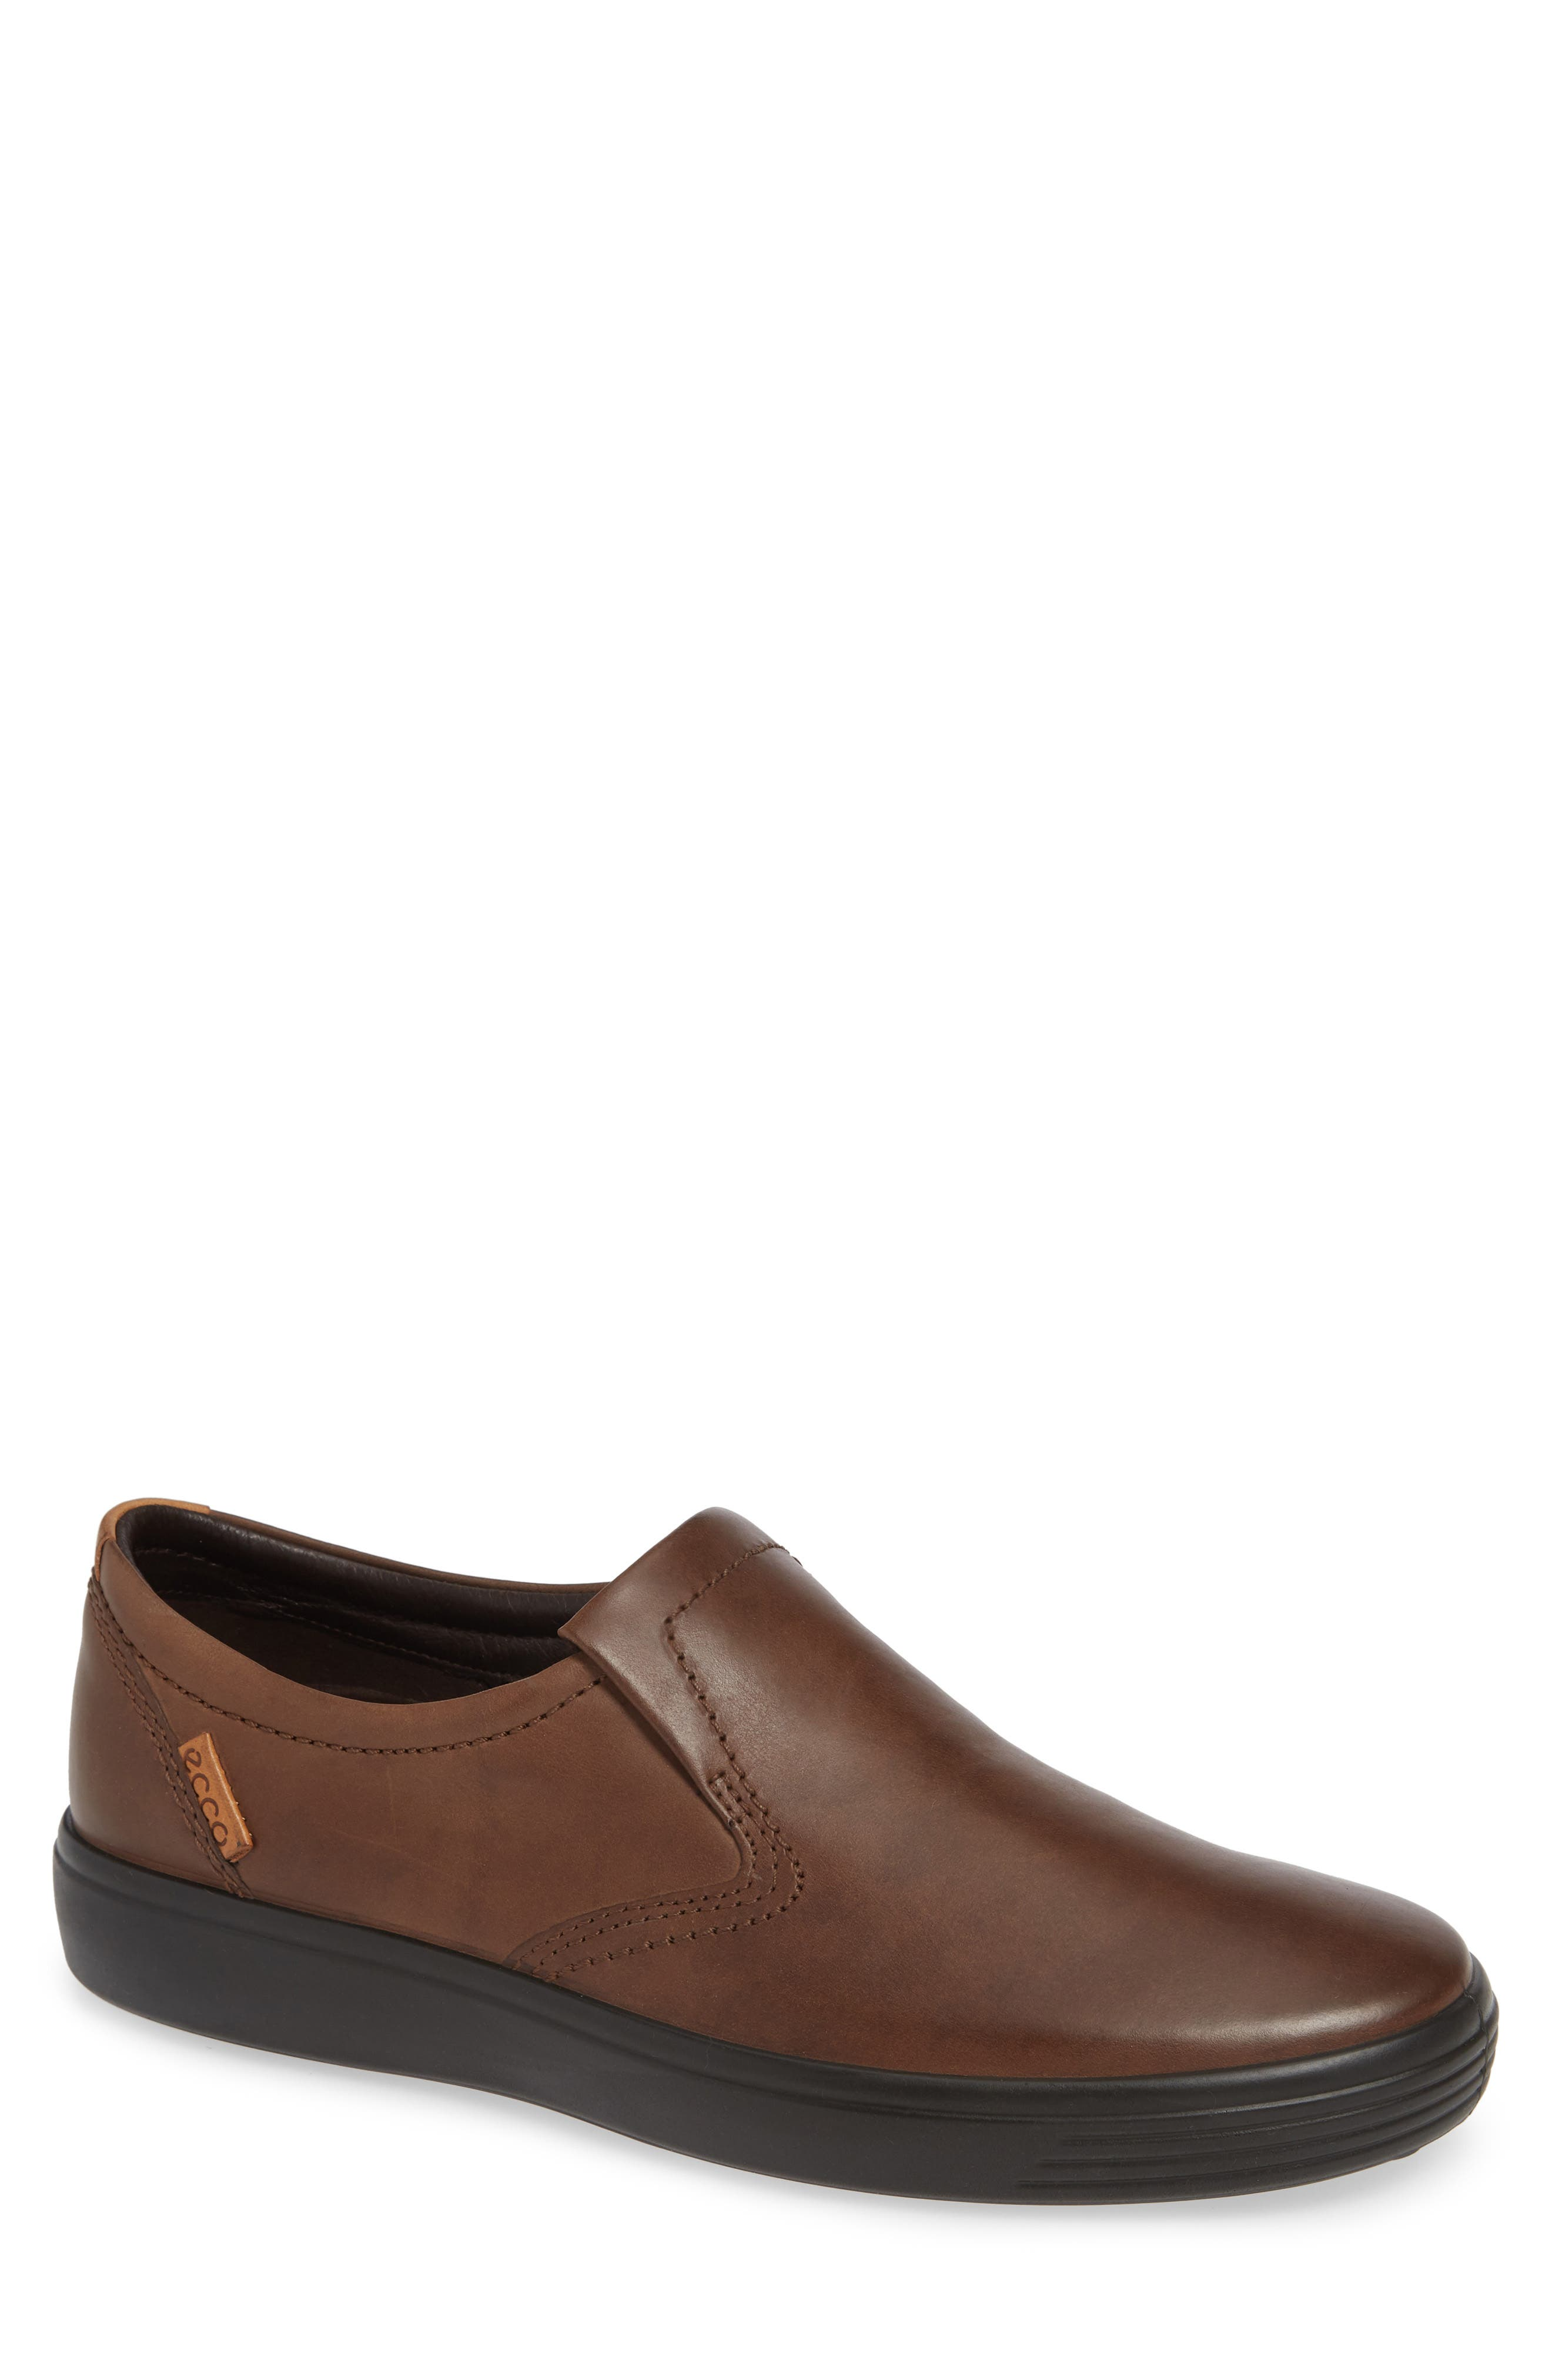 'Soft 7' Slip-On,                         Main,                         color, BROWN LEATHER